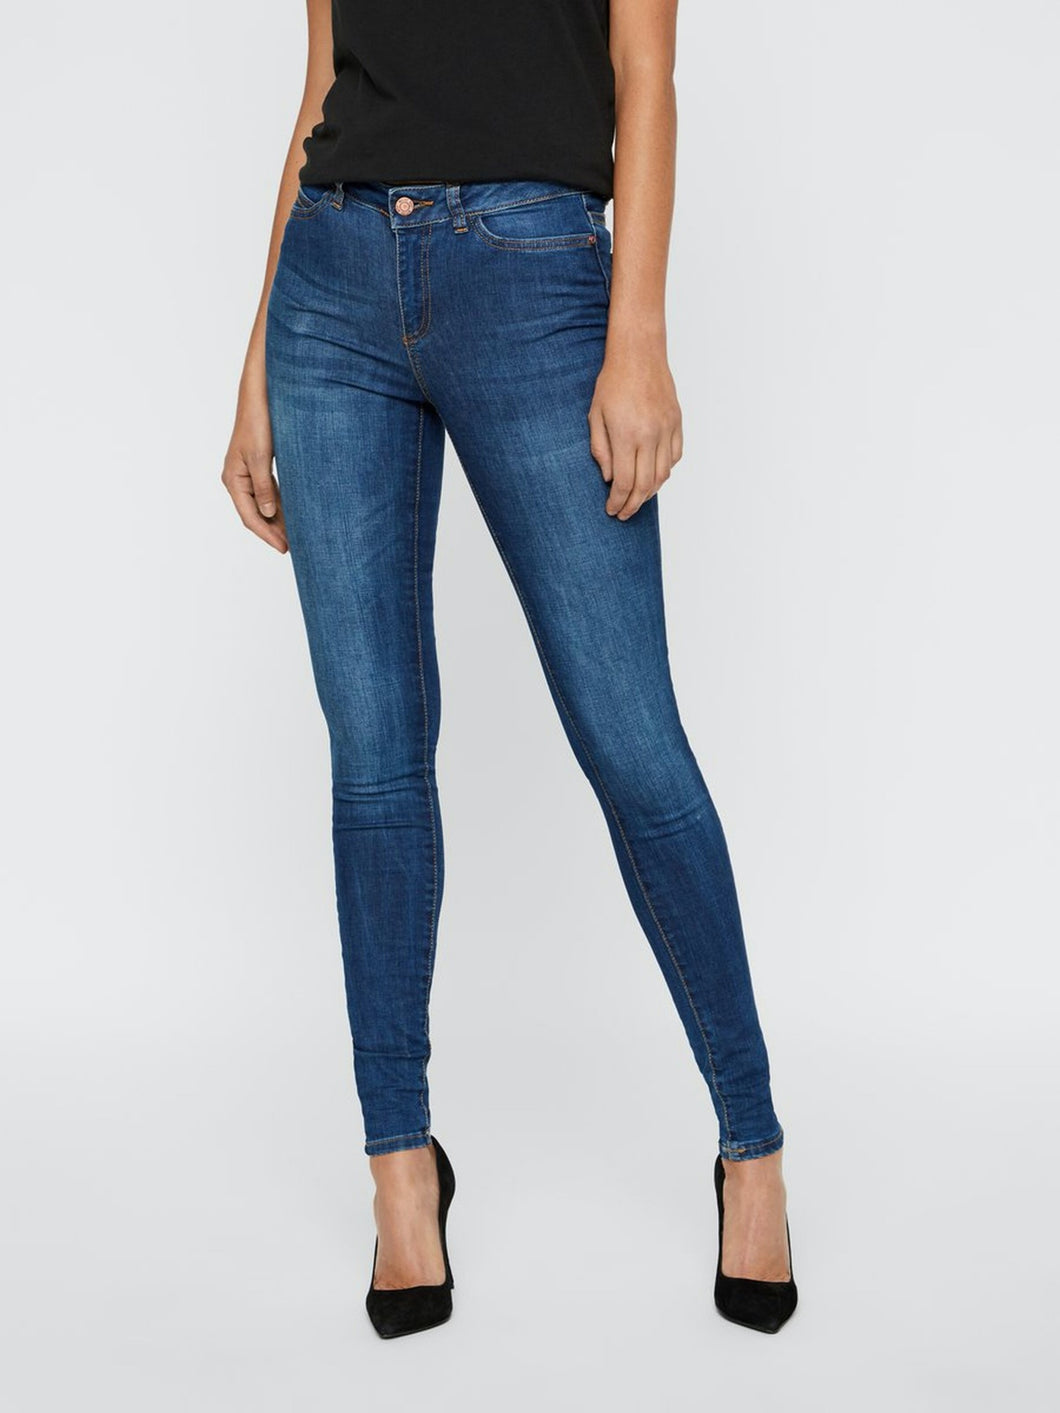 Lucy Power Shape Jeans - 30 / 24 - JEANS BLÅ, DAM, DENIM,